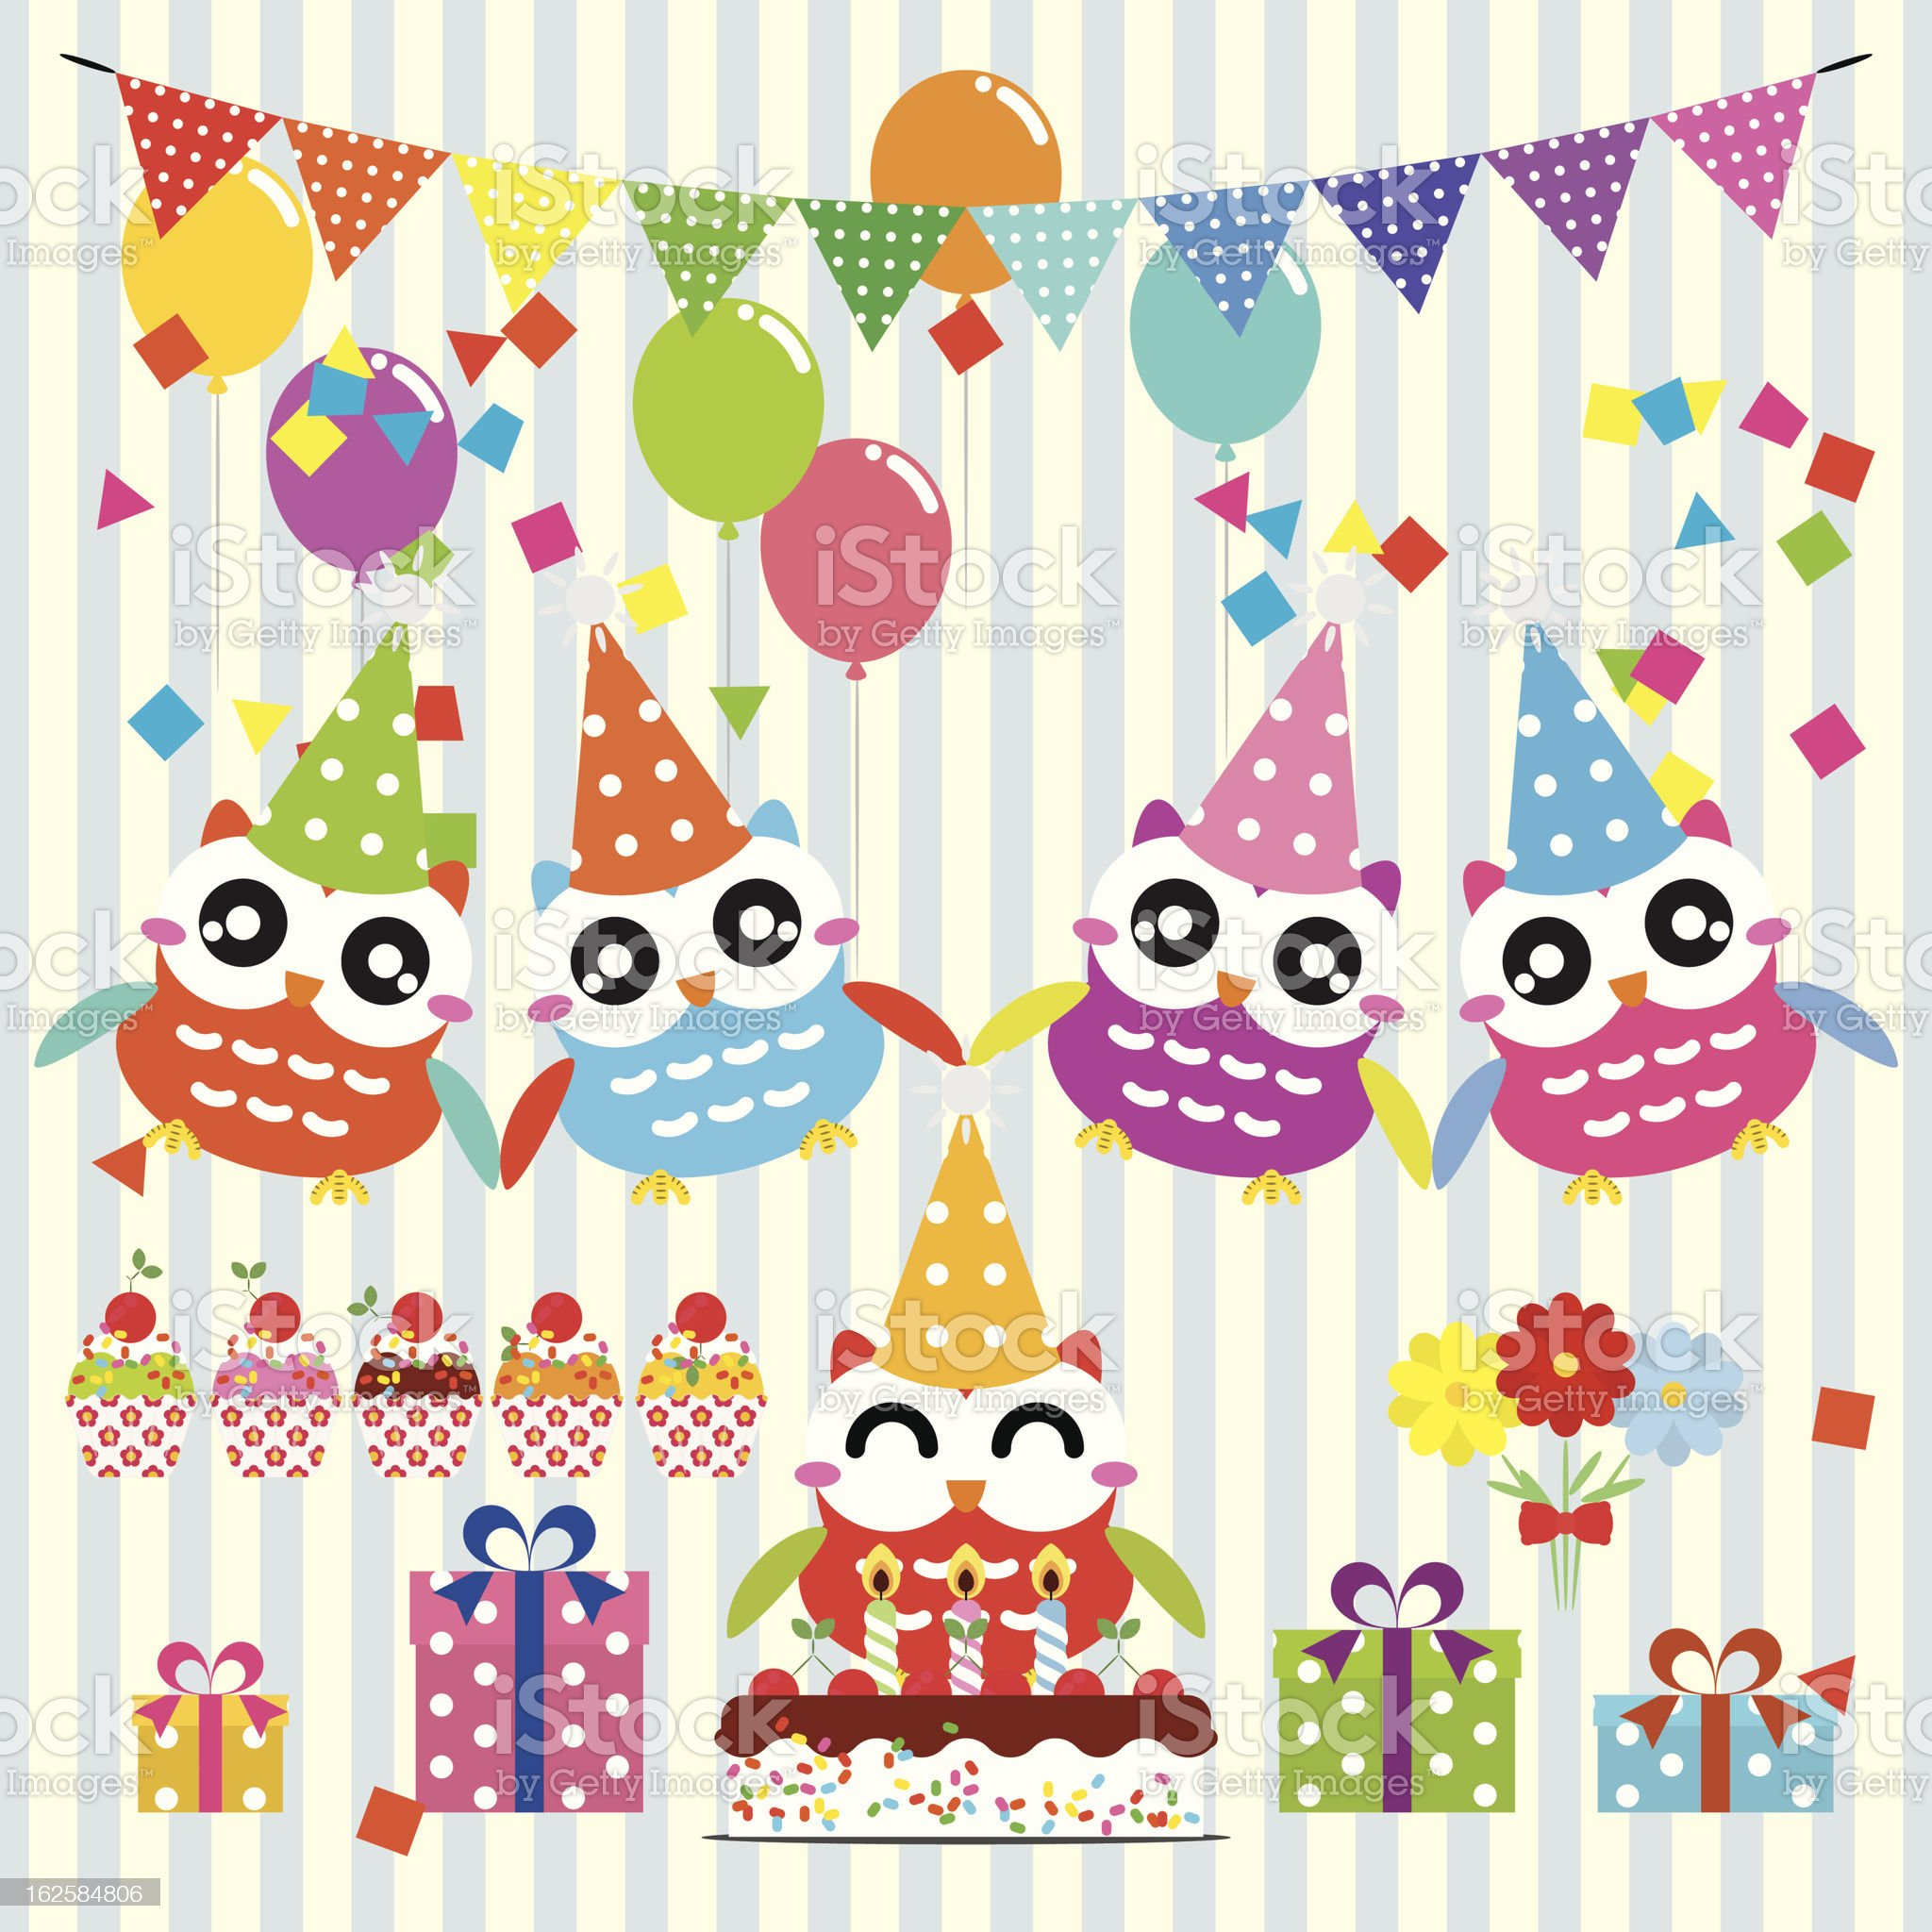 Owl birthday party design elements royalty-free stock vector art